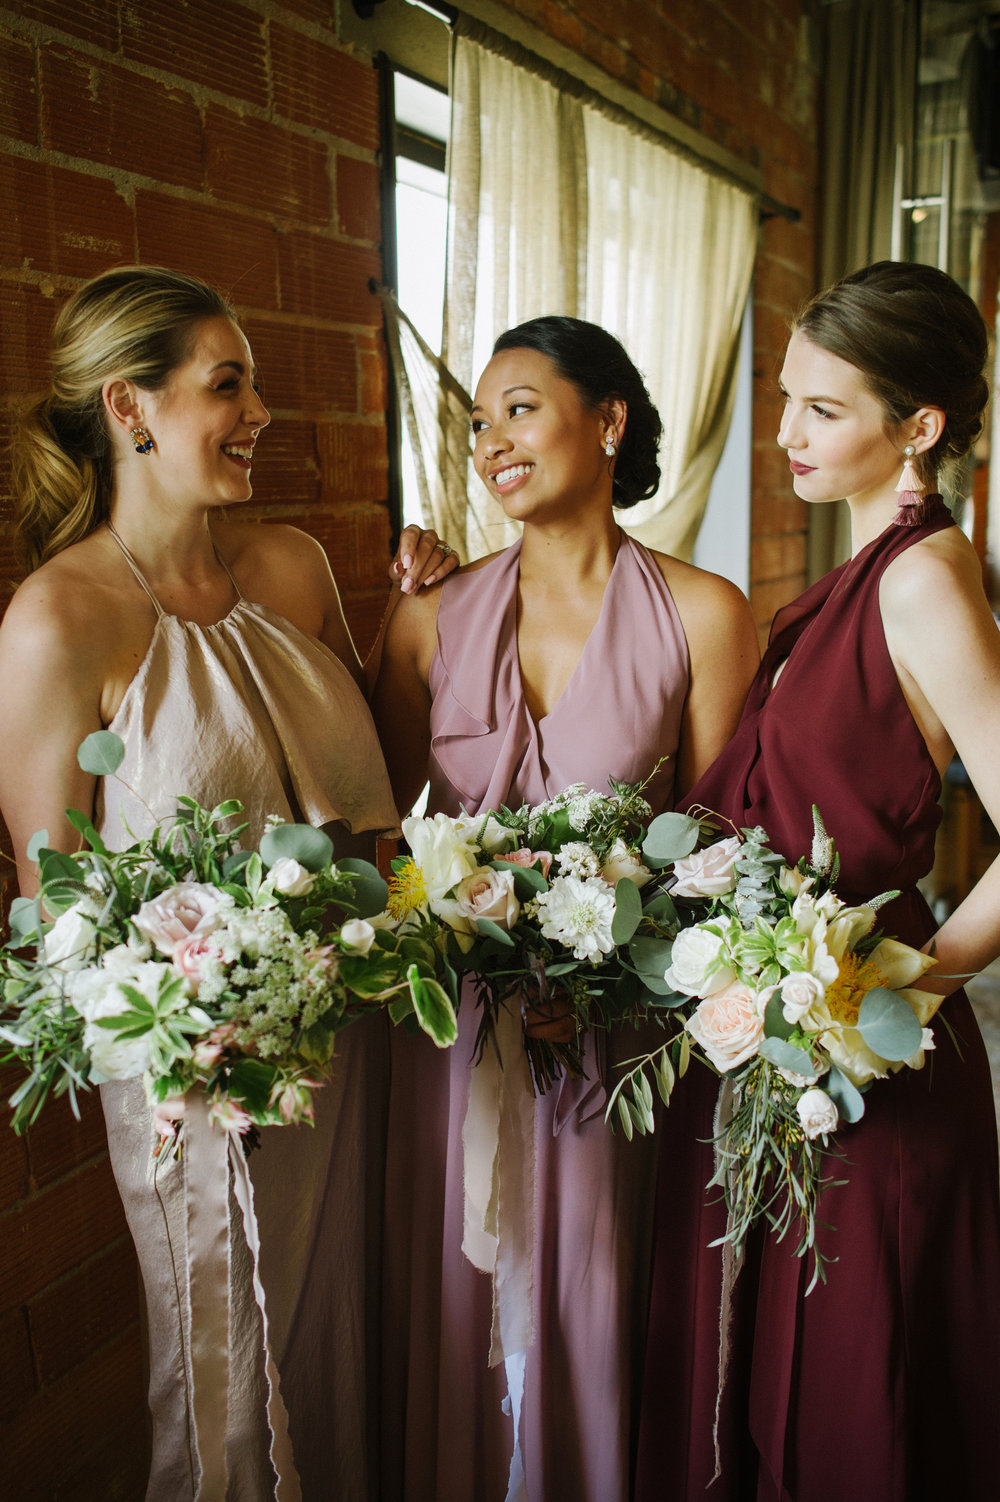 Calgary_Wedding_Photography_Bridgette_Bar_Bridesmaids_Shoot_2018_HR017.jpg